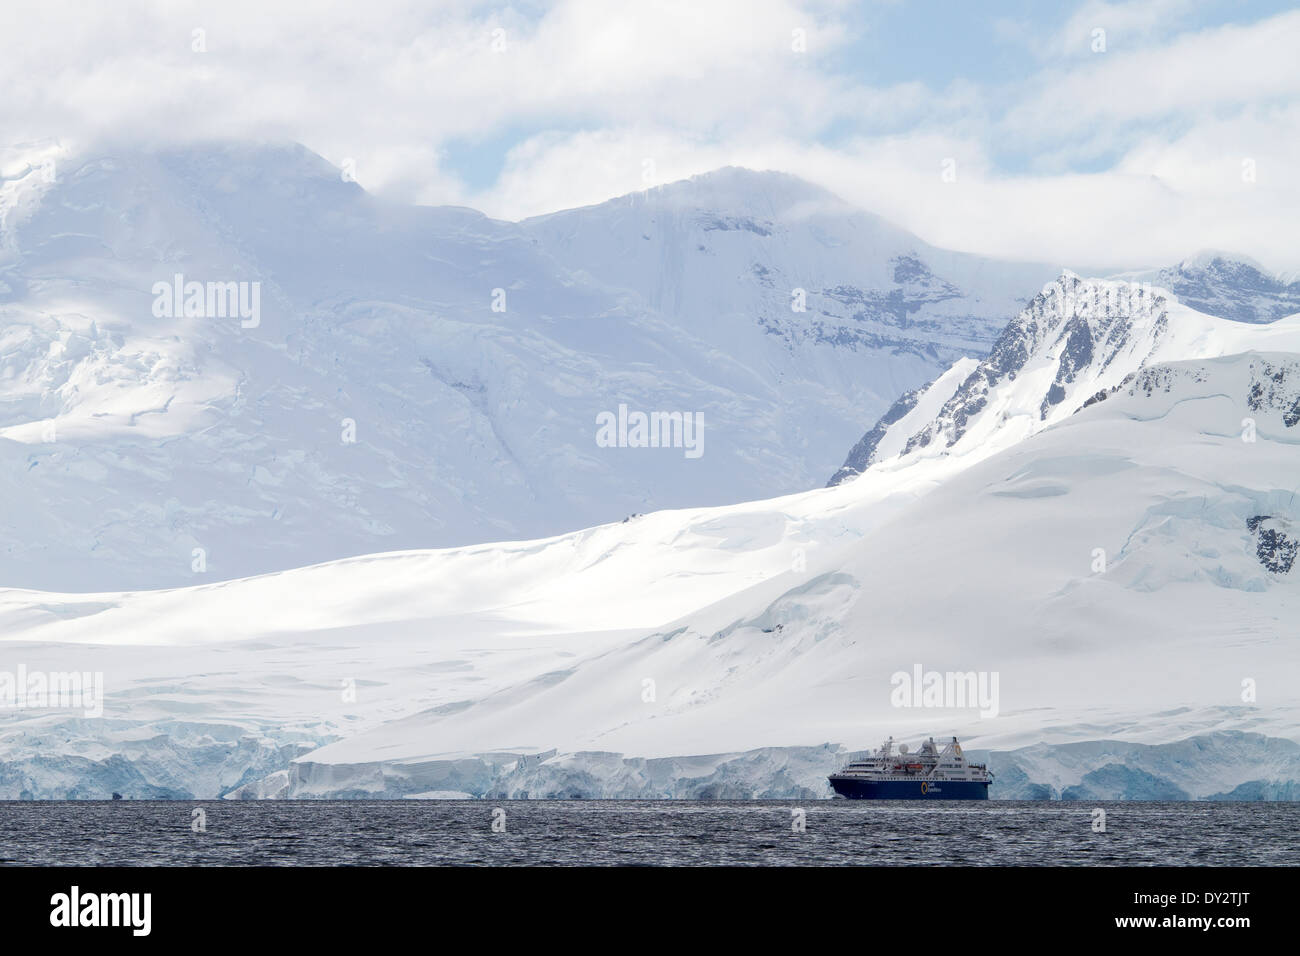 Antarctica tourism expedition cruise ship looks small in the Antarctica landscape of mountains, mountain,  Antarctic - Stock Image